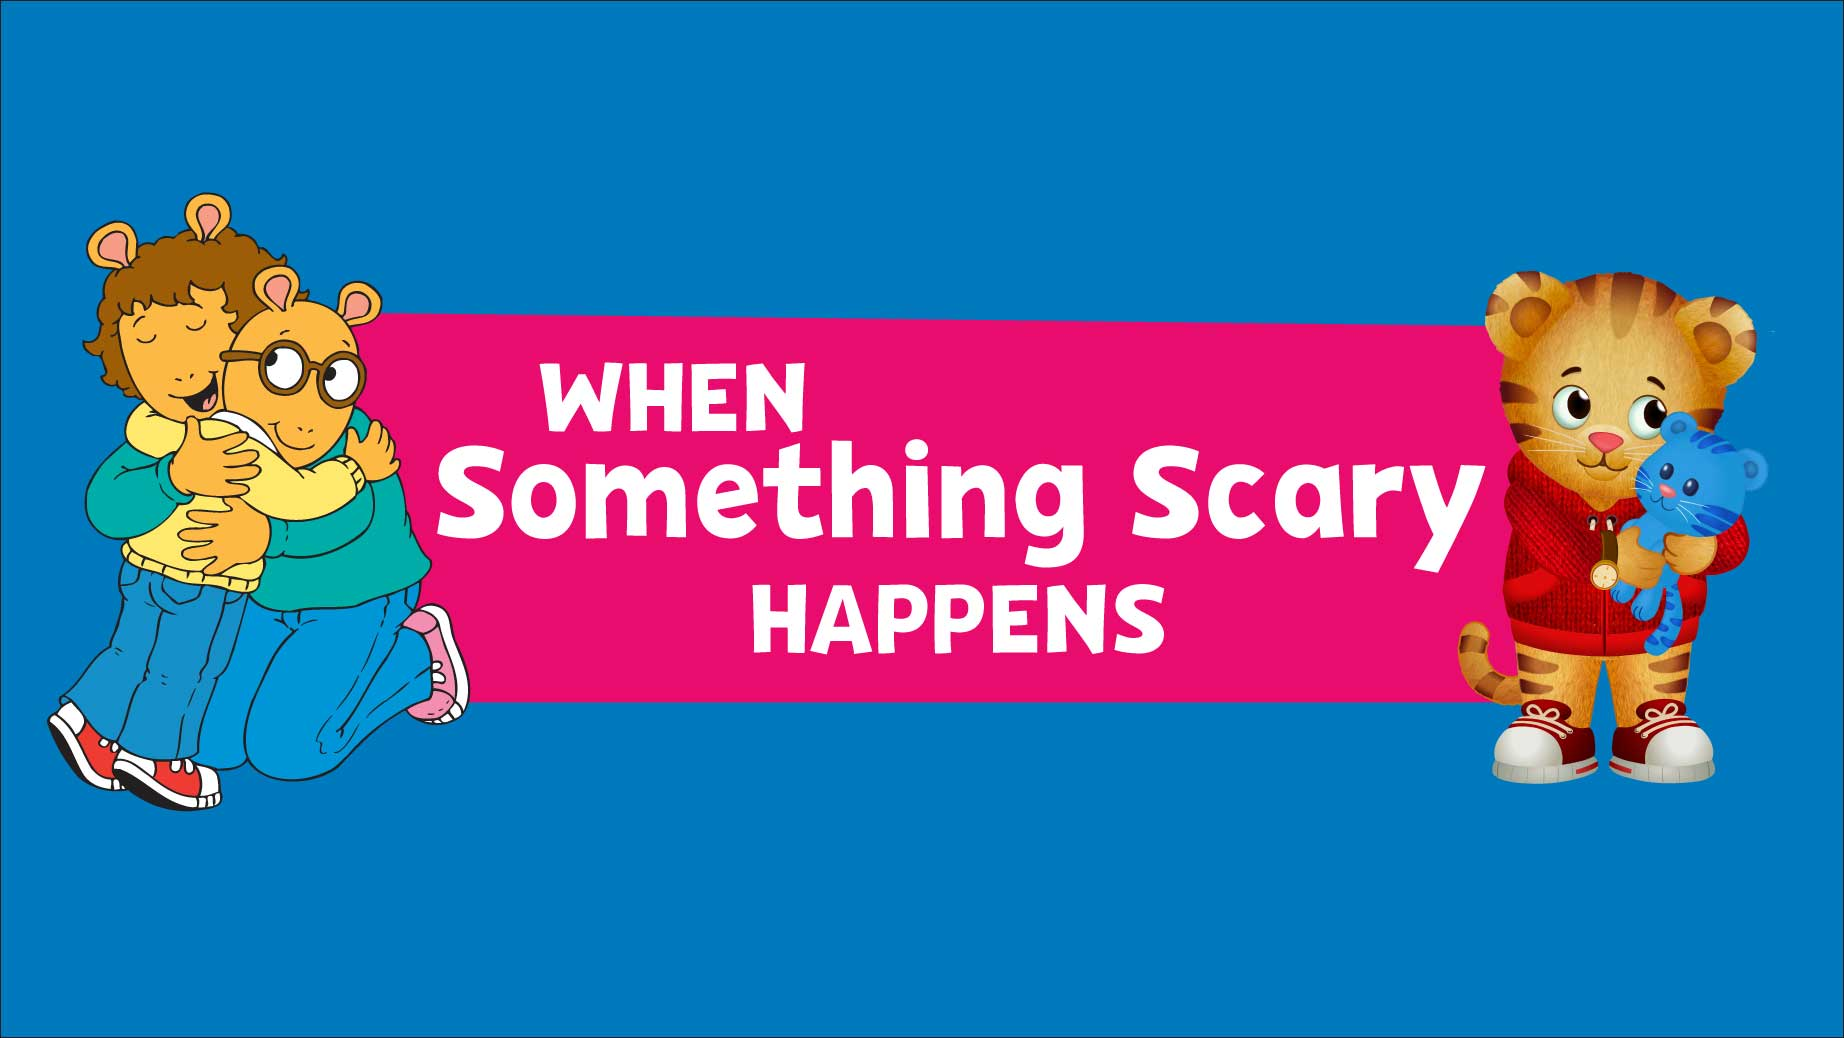 When Something Scary Happens